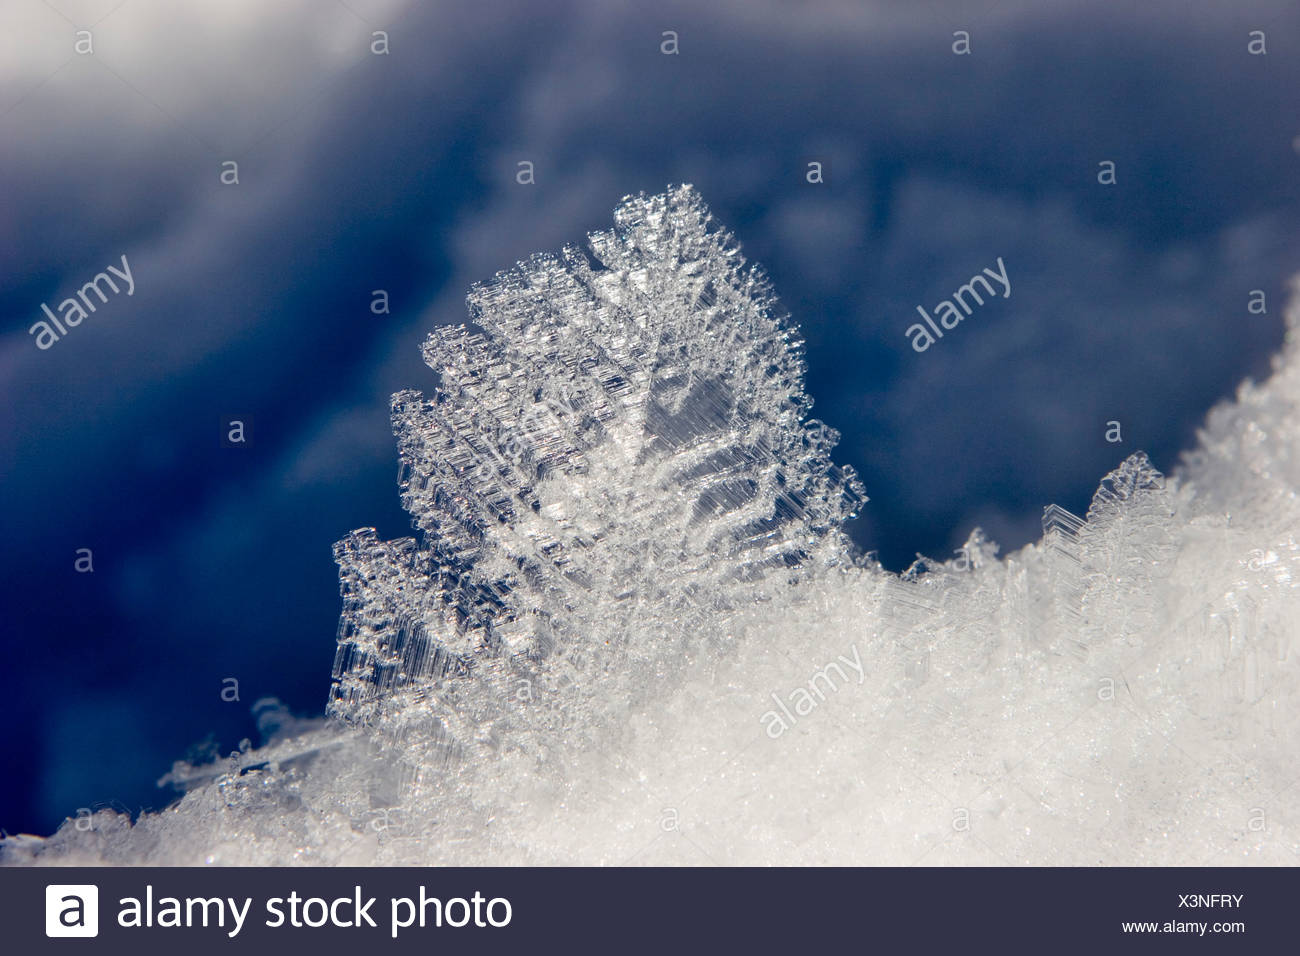 Snow cristals - Stock Image